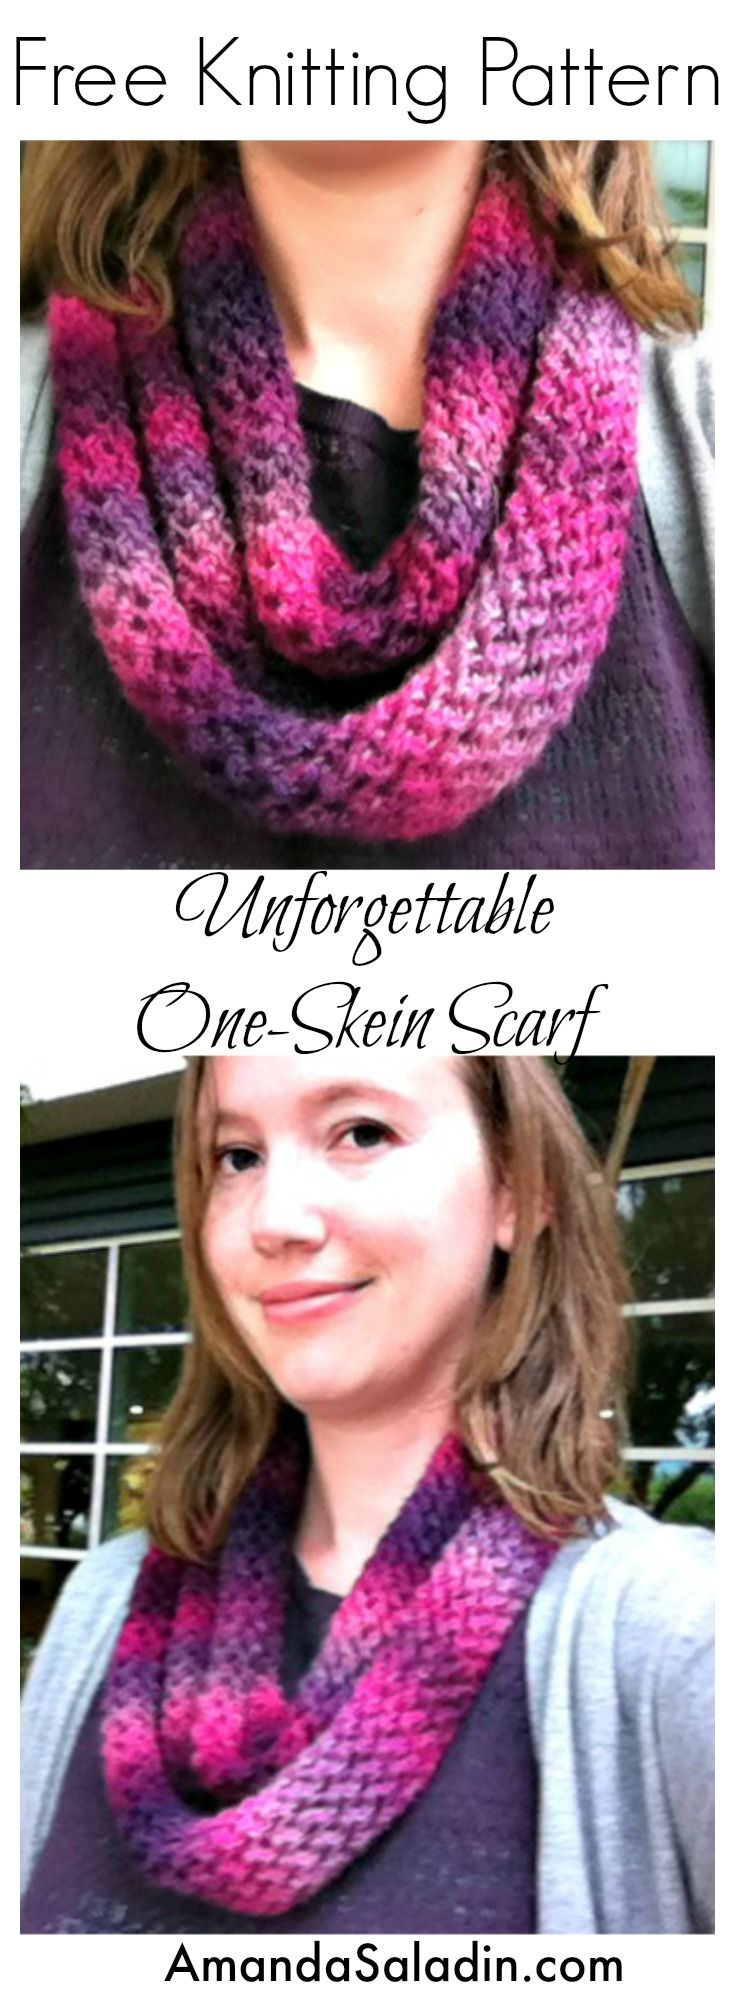 This is the knit version of the popular Unforgettable One Skein Scarf using Red Heart Boutique Unforgettable yarn for amazing color change.